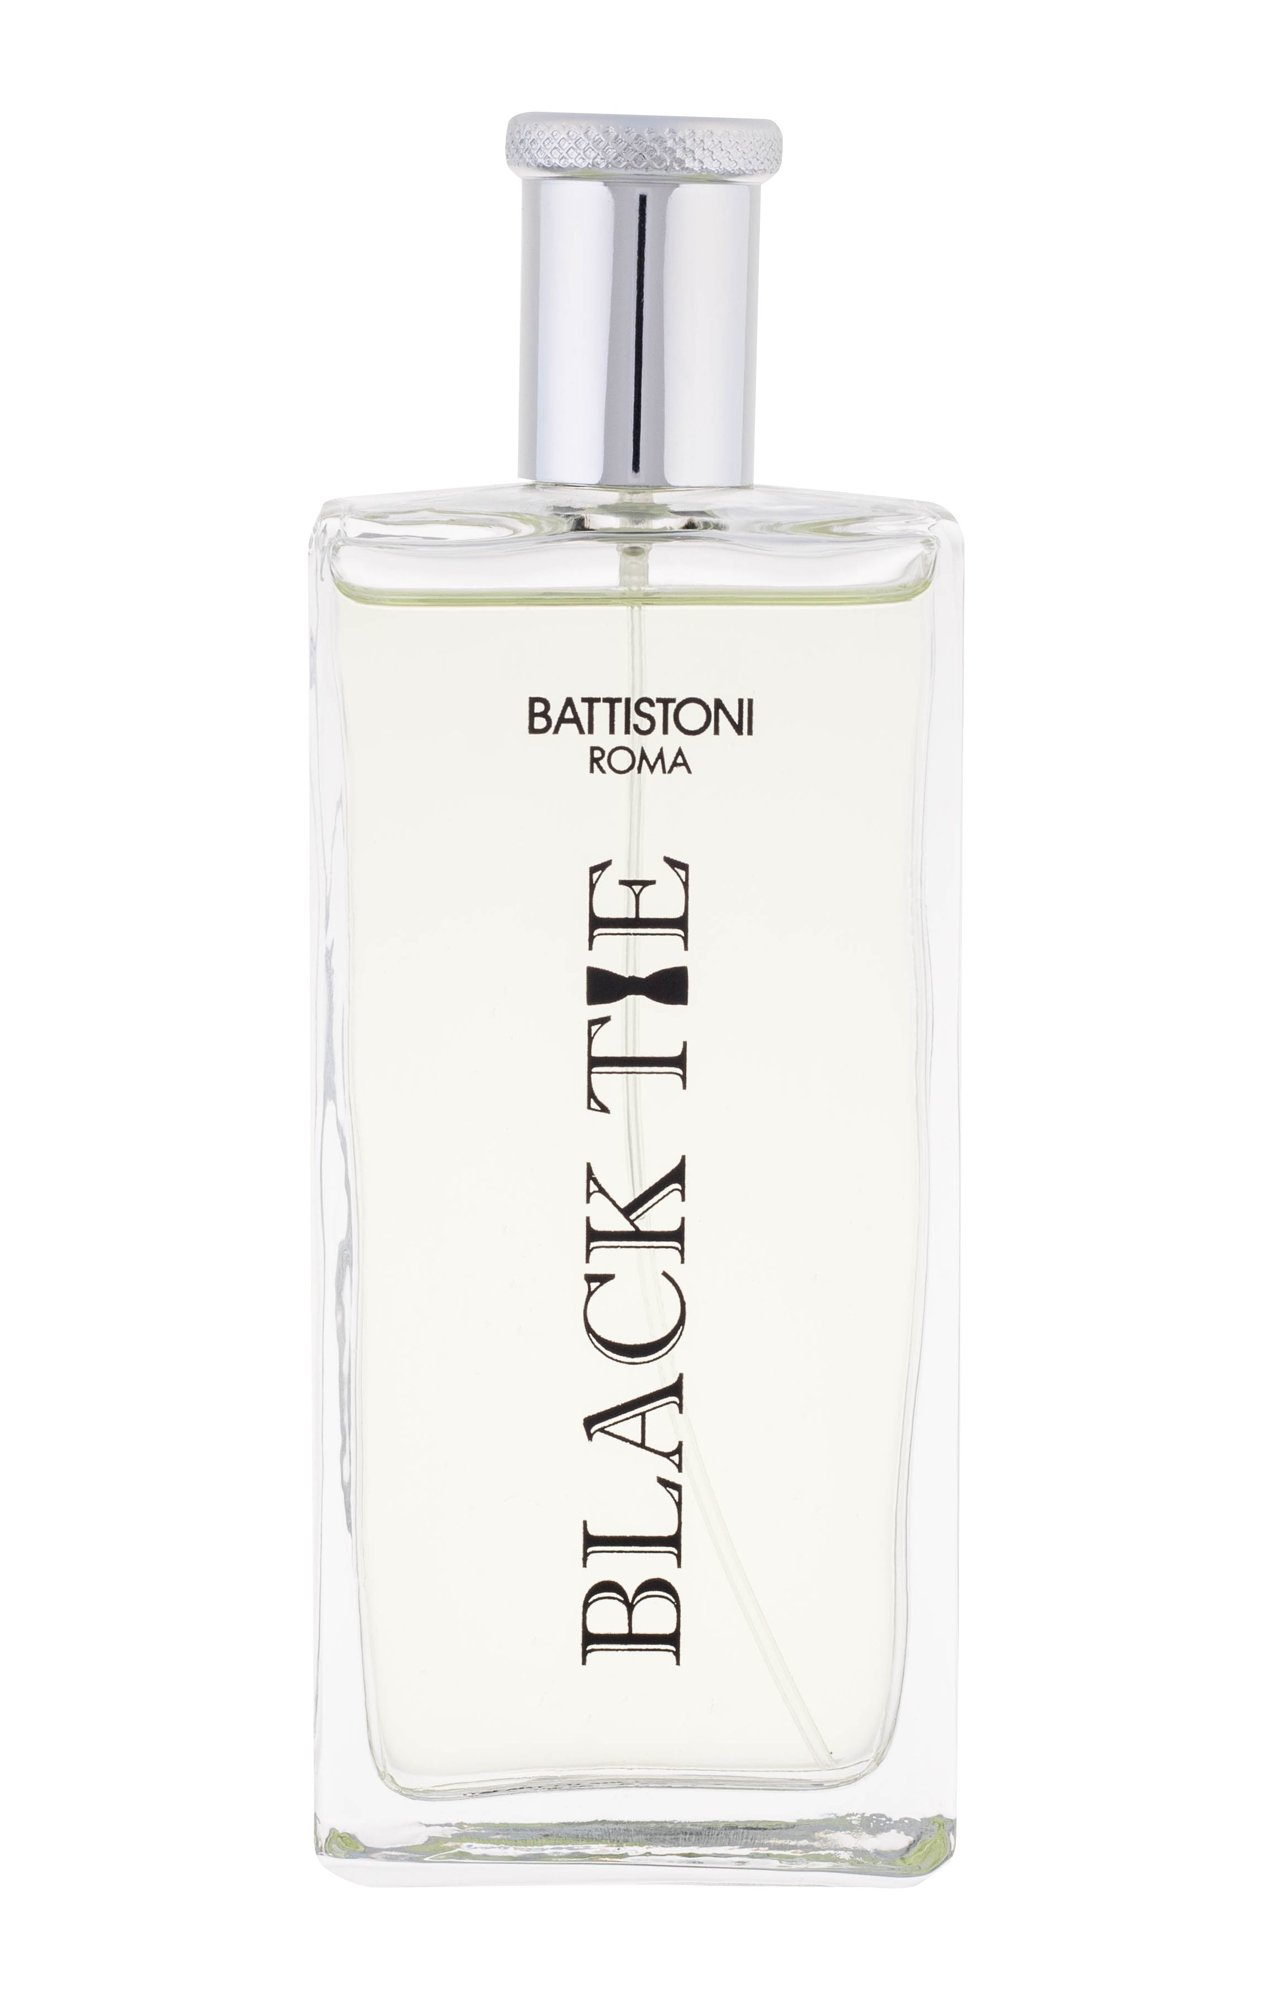 Battistoni Roma Black Tie Eau de Toilette 100ml